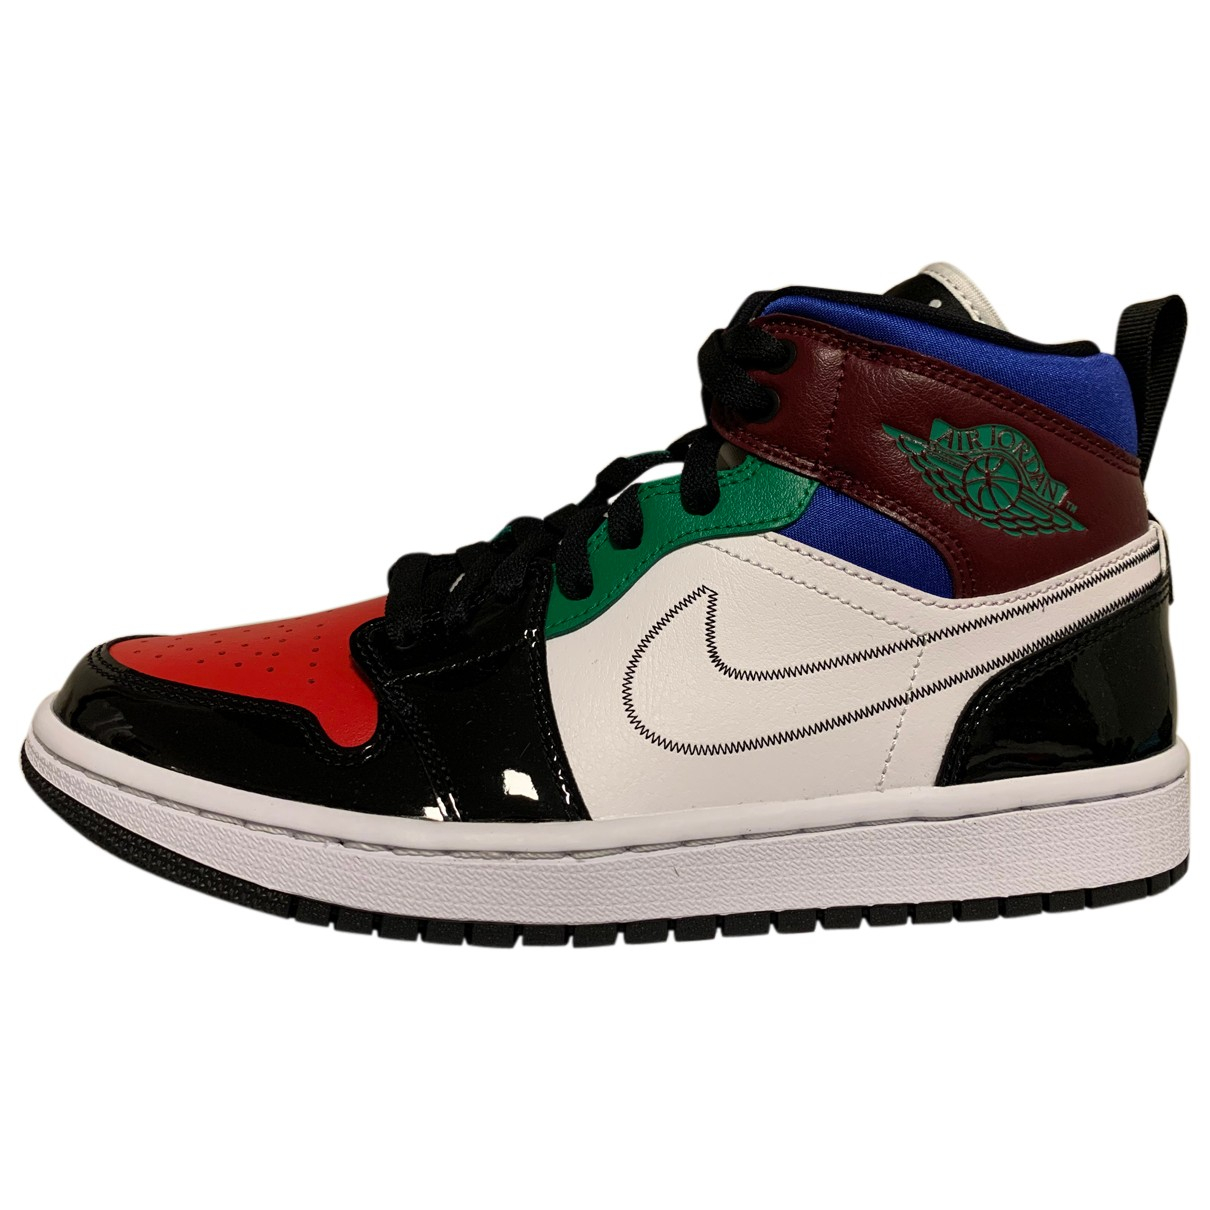 Jordan - Baskets Air Jordan 1  pour femme en cuir - multicolore